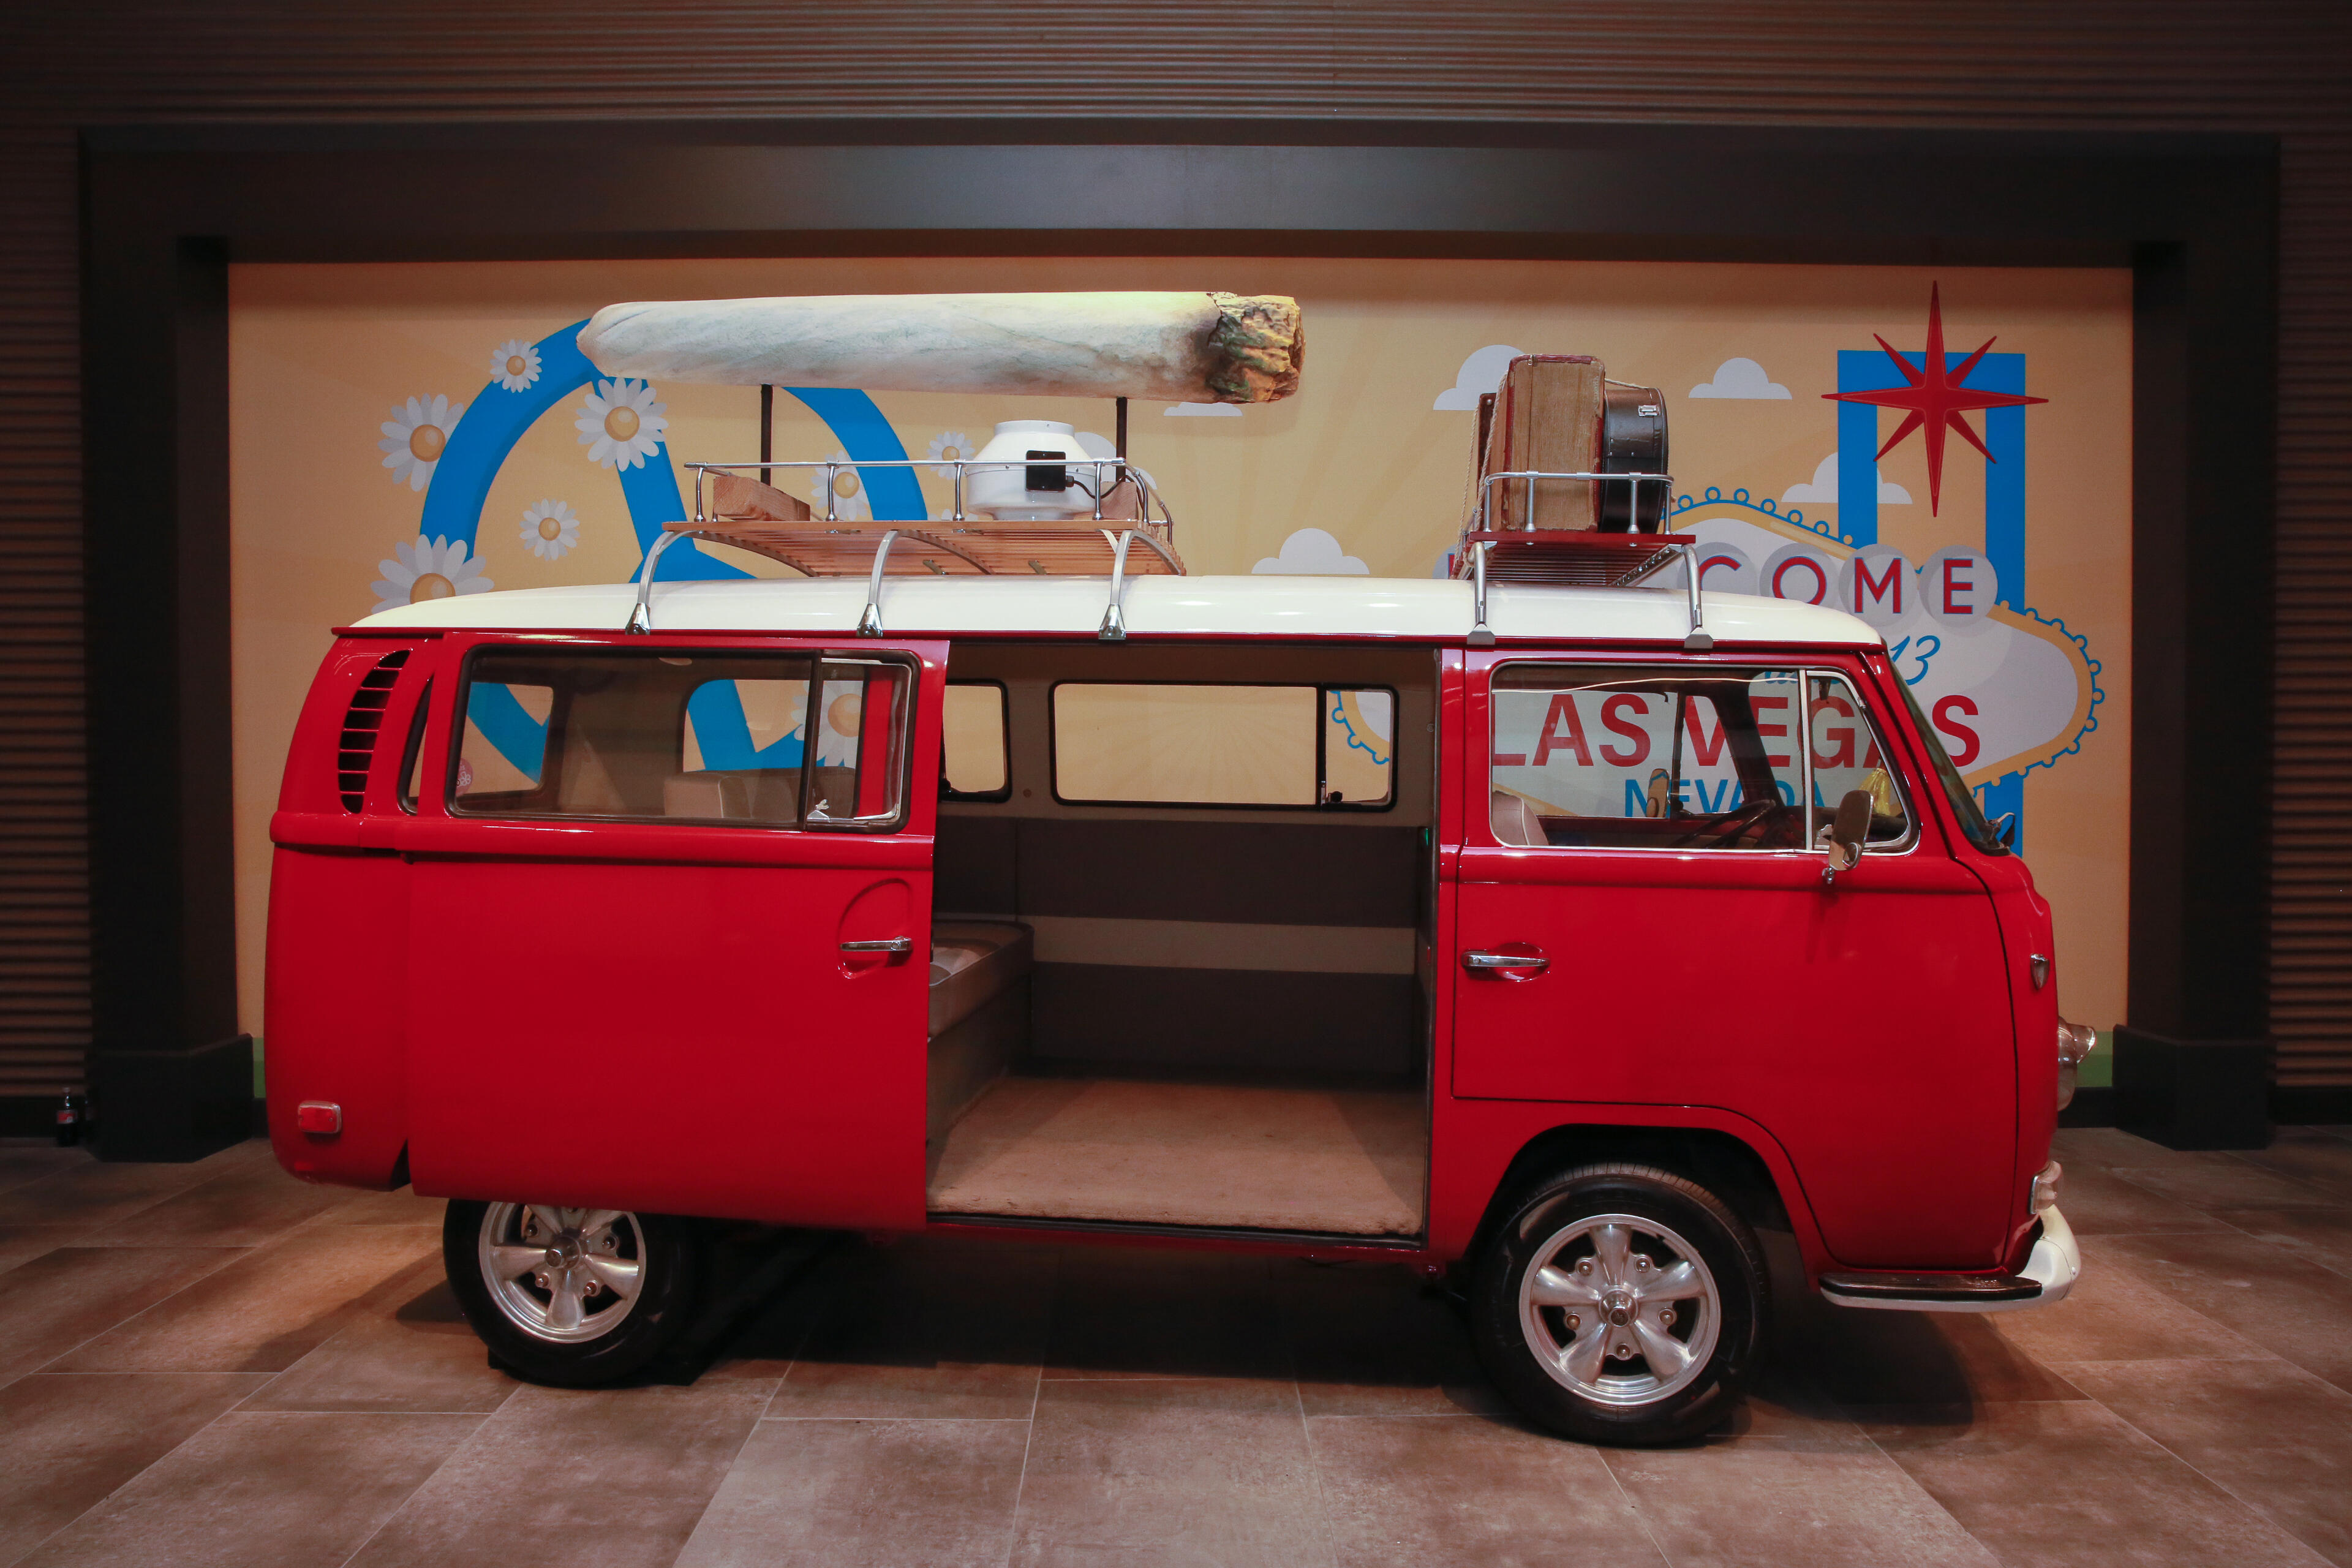 This old VW van is a photo-op that seems to have gone awry. People pressed a button to make it look smoke-filled for their selfies. But they did it so much that the whole lobby area would get hazy.